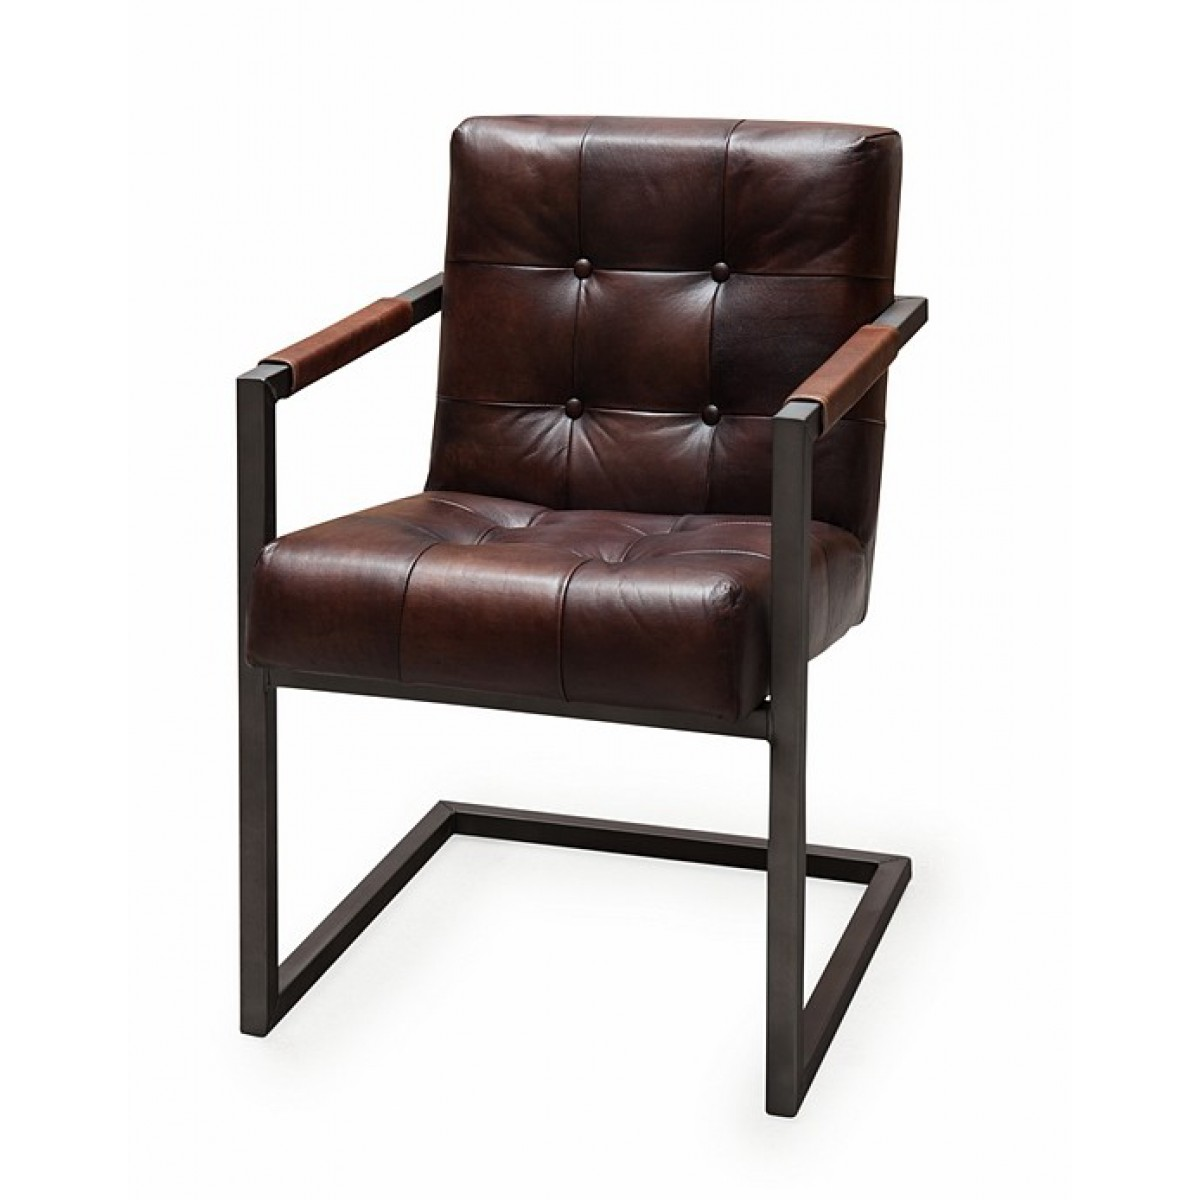 armstoel_buffel_leer_leder_batse_badsal_brown_captions_armchair_induchair